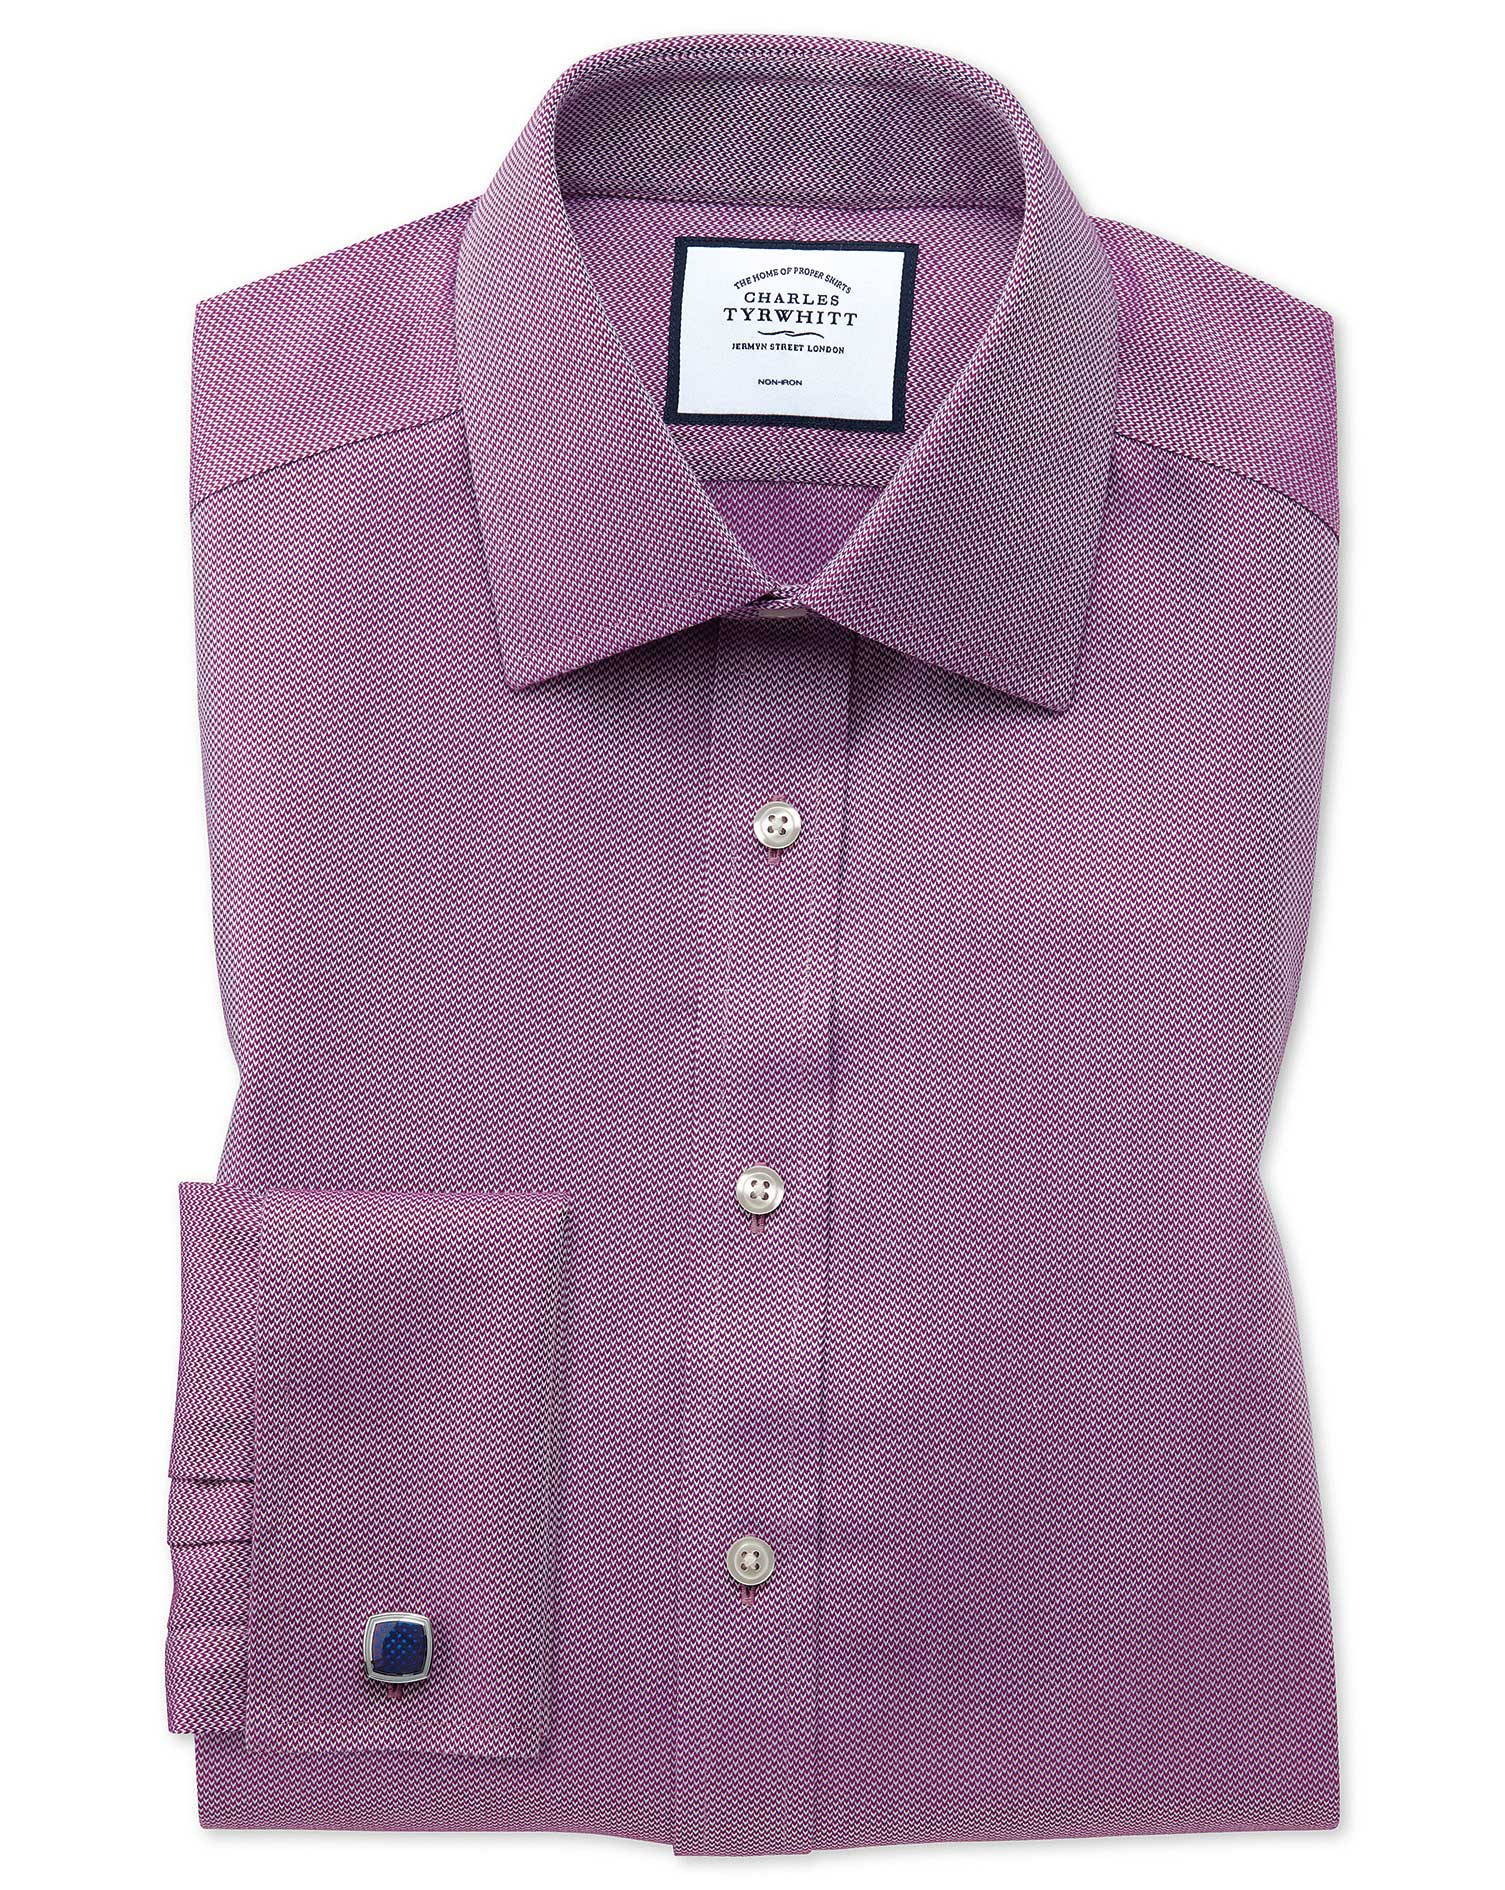 Extra Slim Fit Non-Iron Berry Arrow Weave Cotton Formal Shirt Double Cuff Size 15/34 by Charles Tyrw